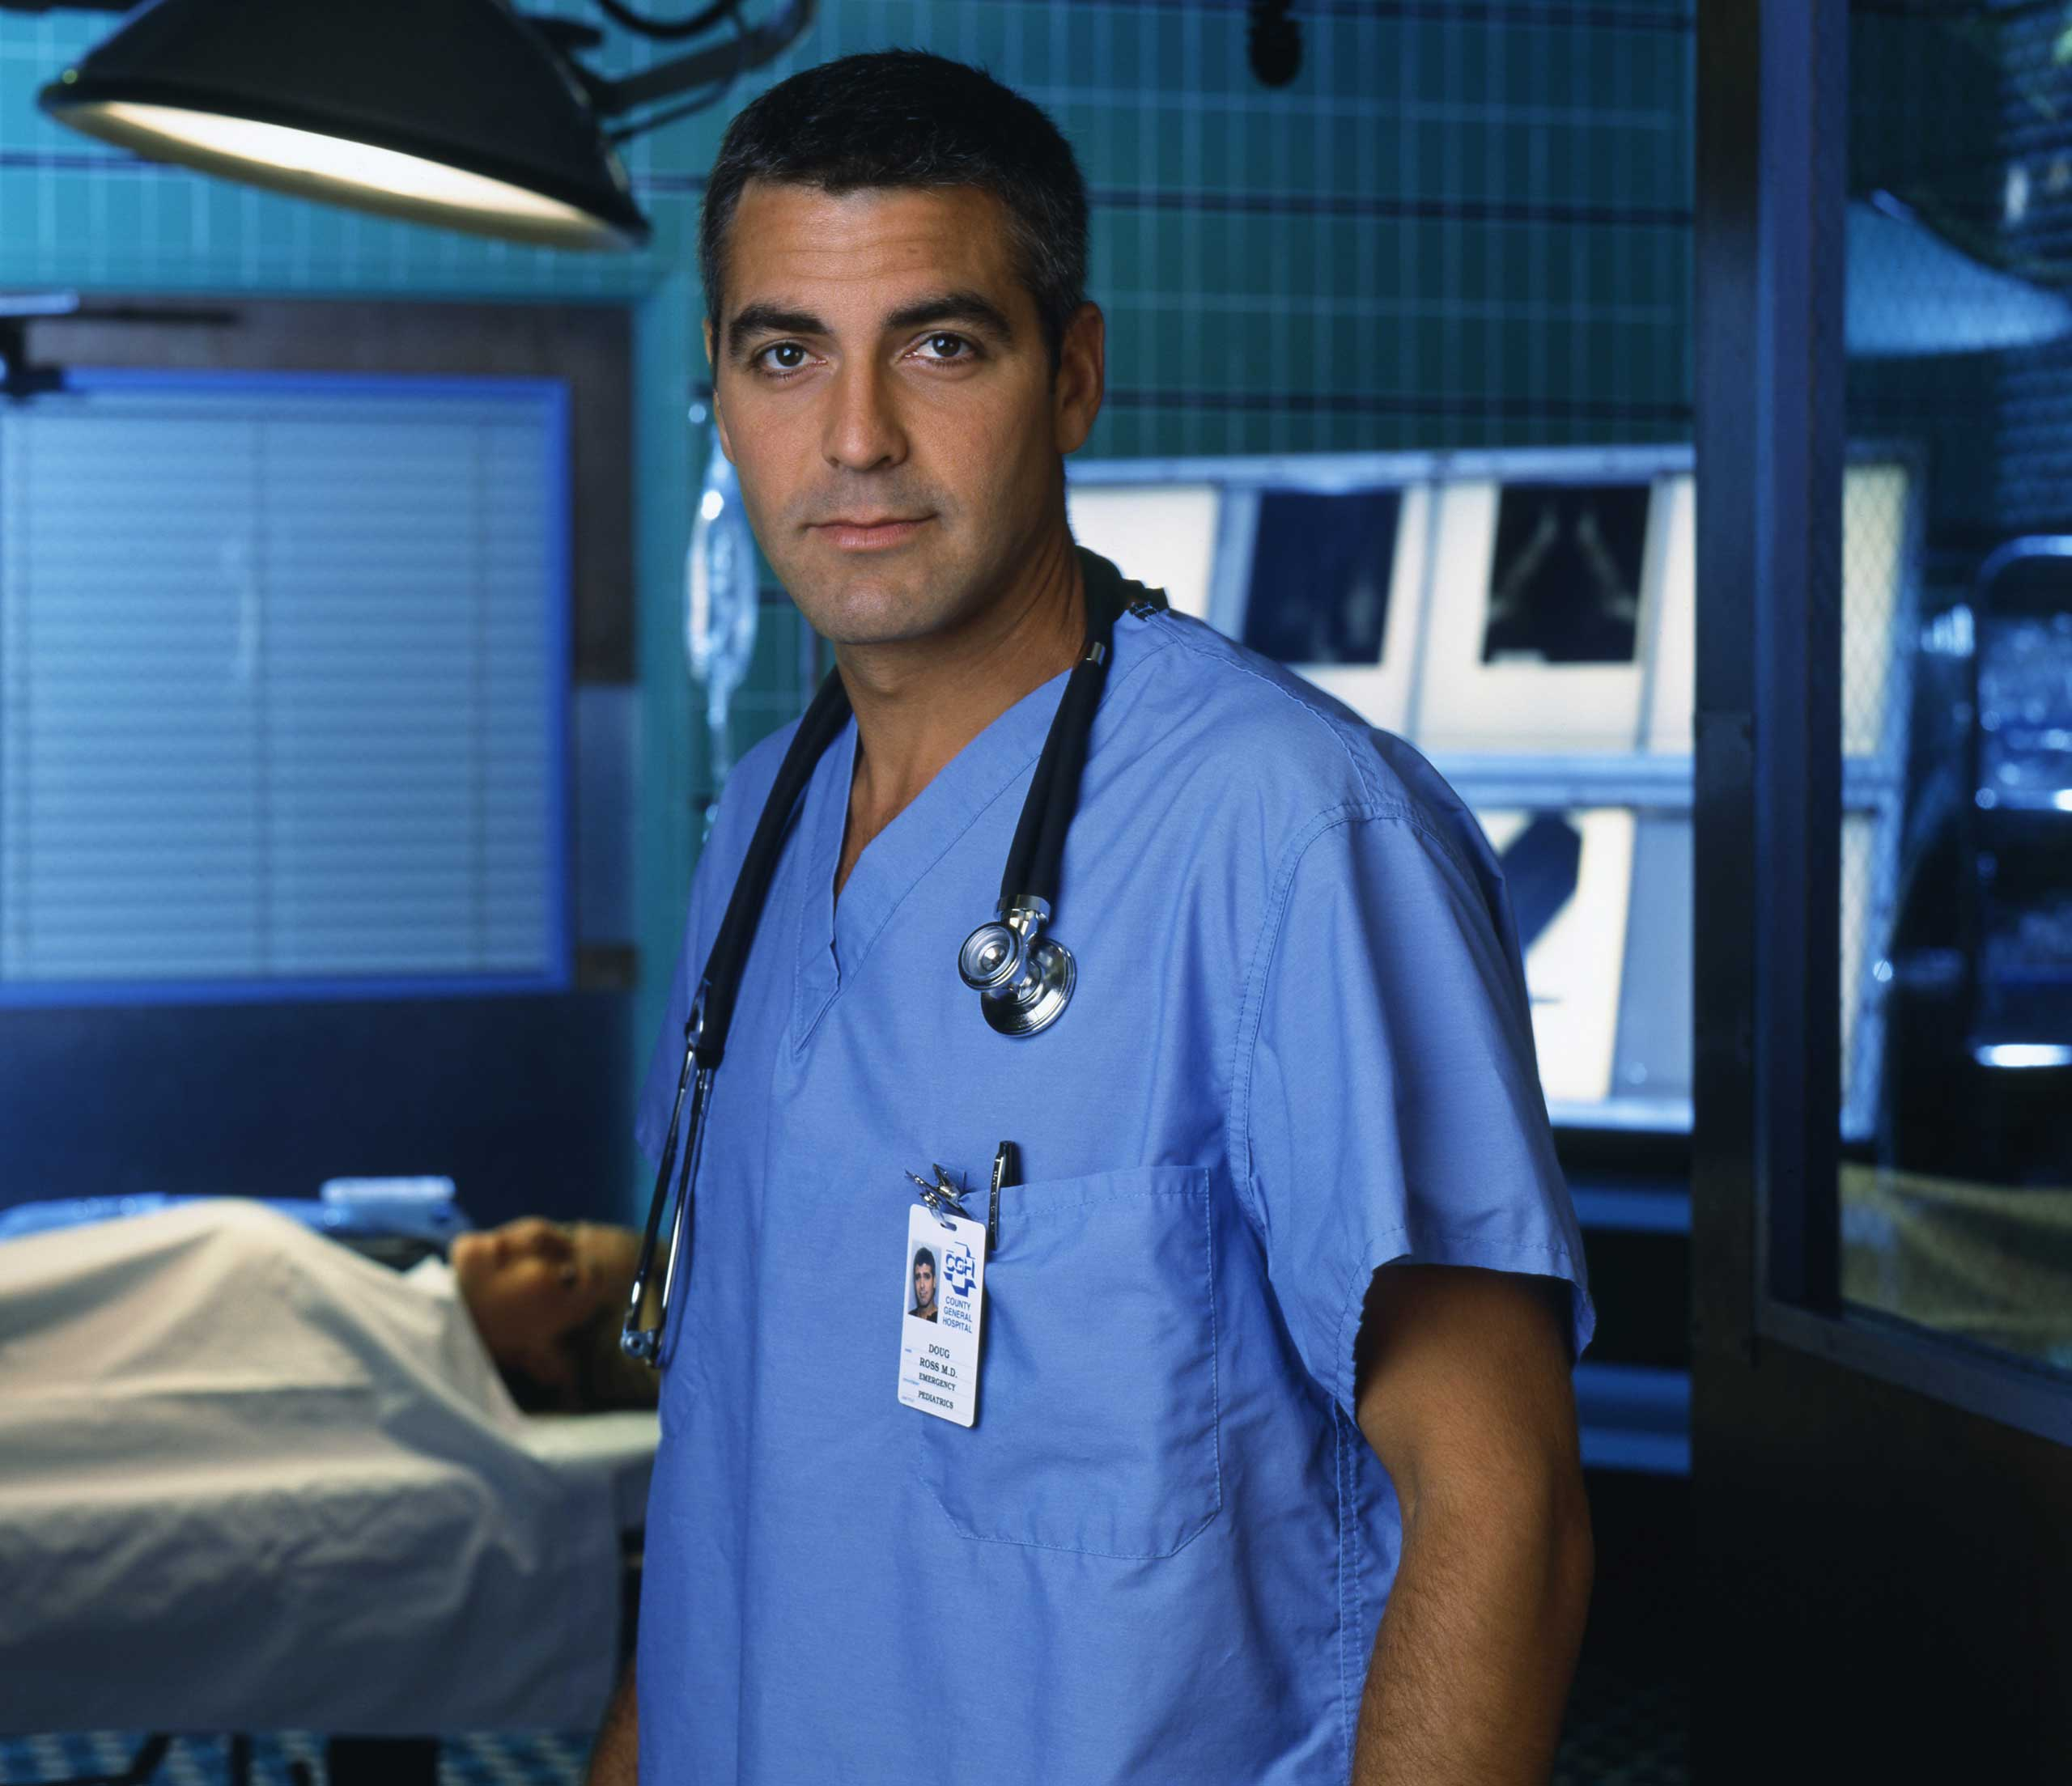 Clooney premiered in his breakout role as Dr. Doug Ross on ER in 1994.